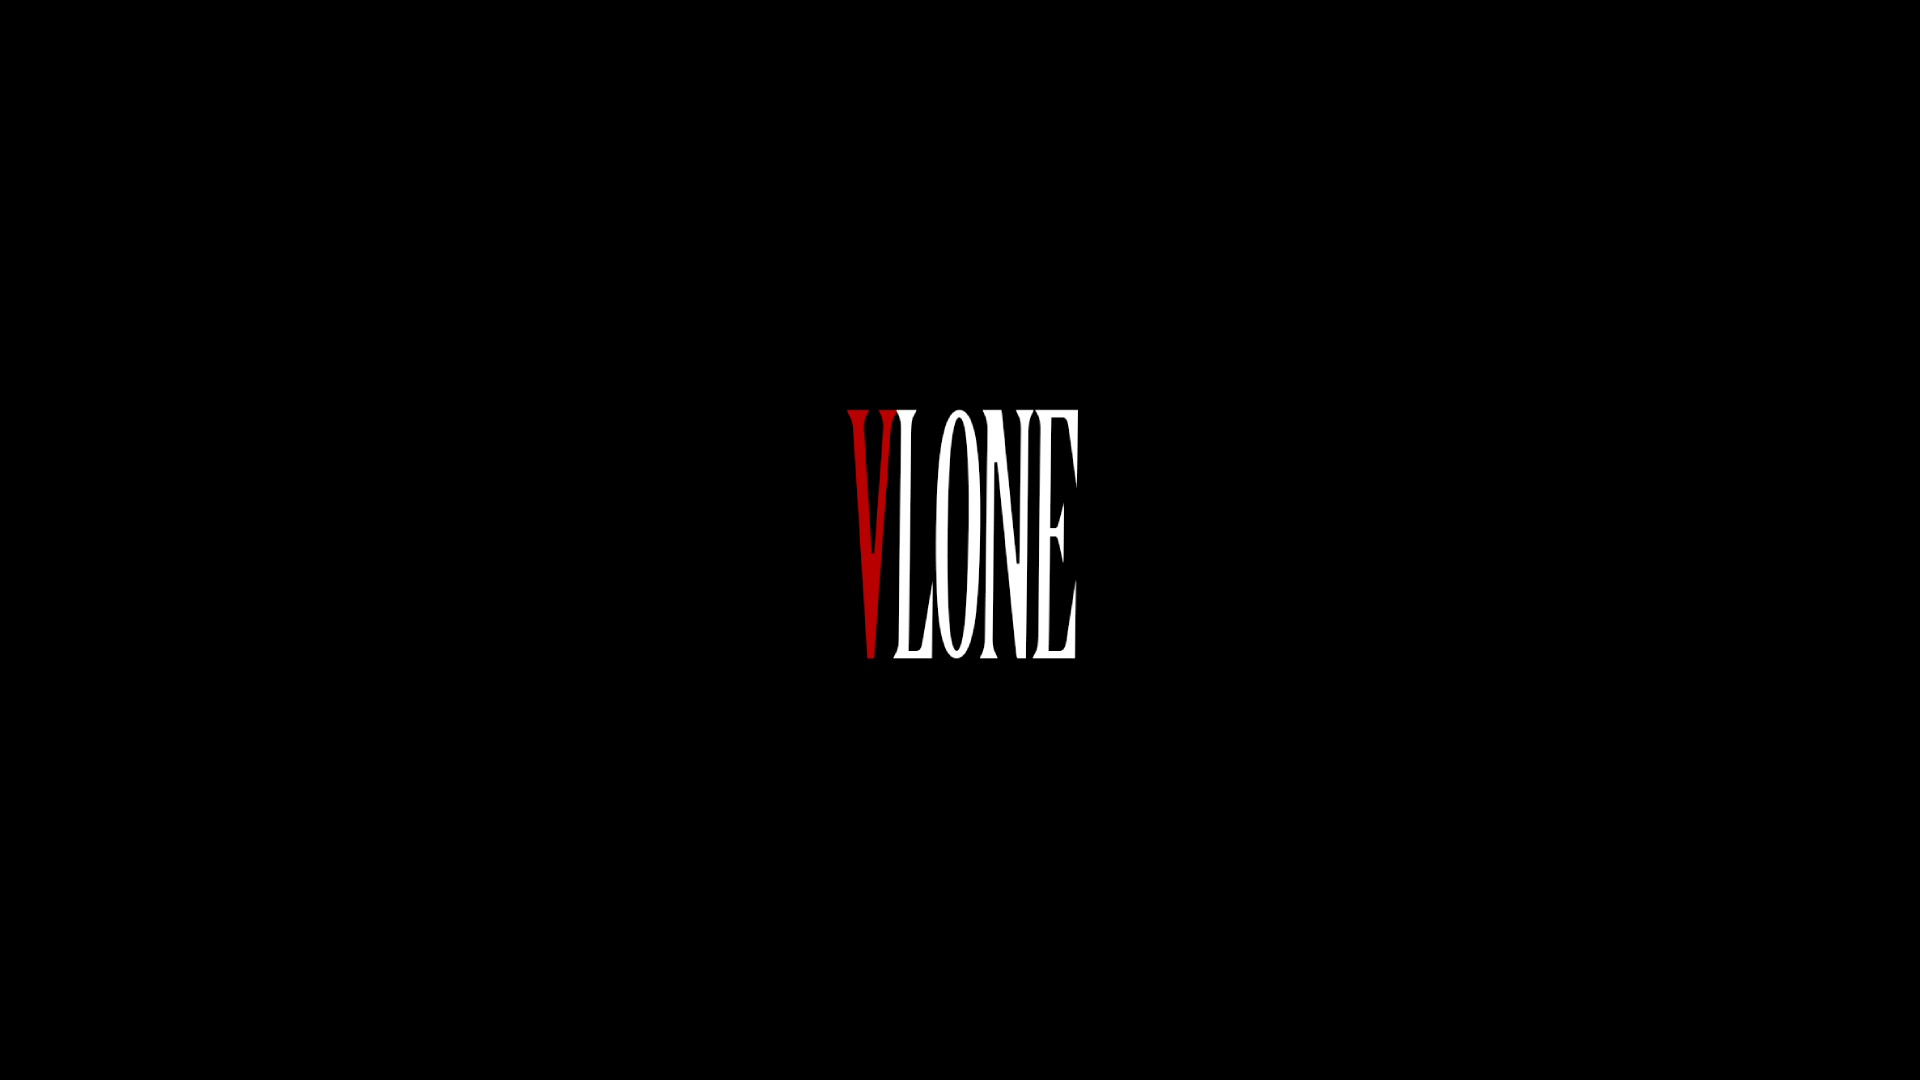 Top VLone Wallpaper For Free Download